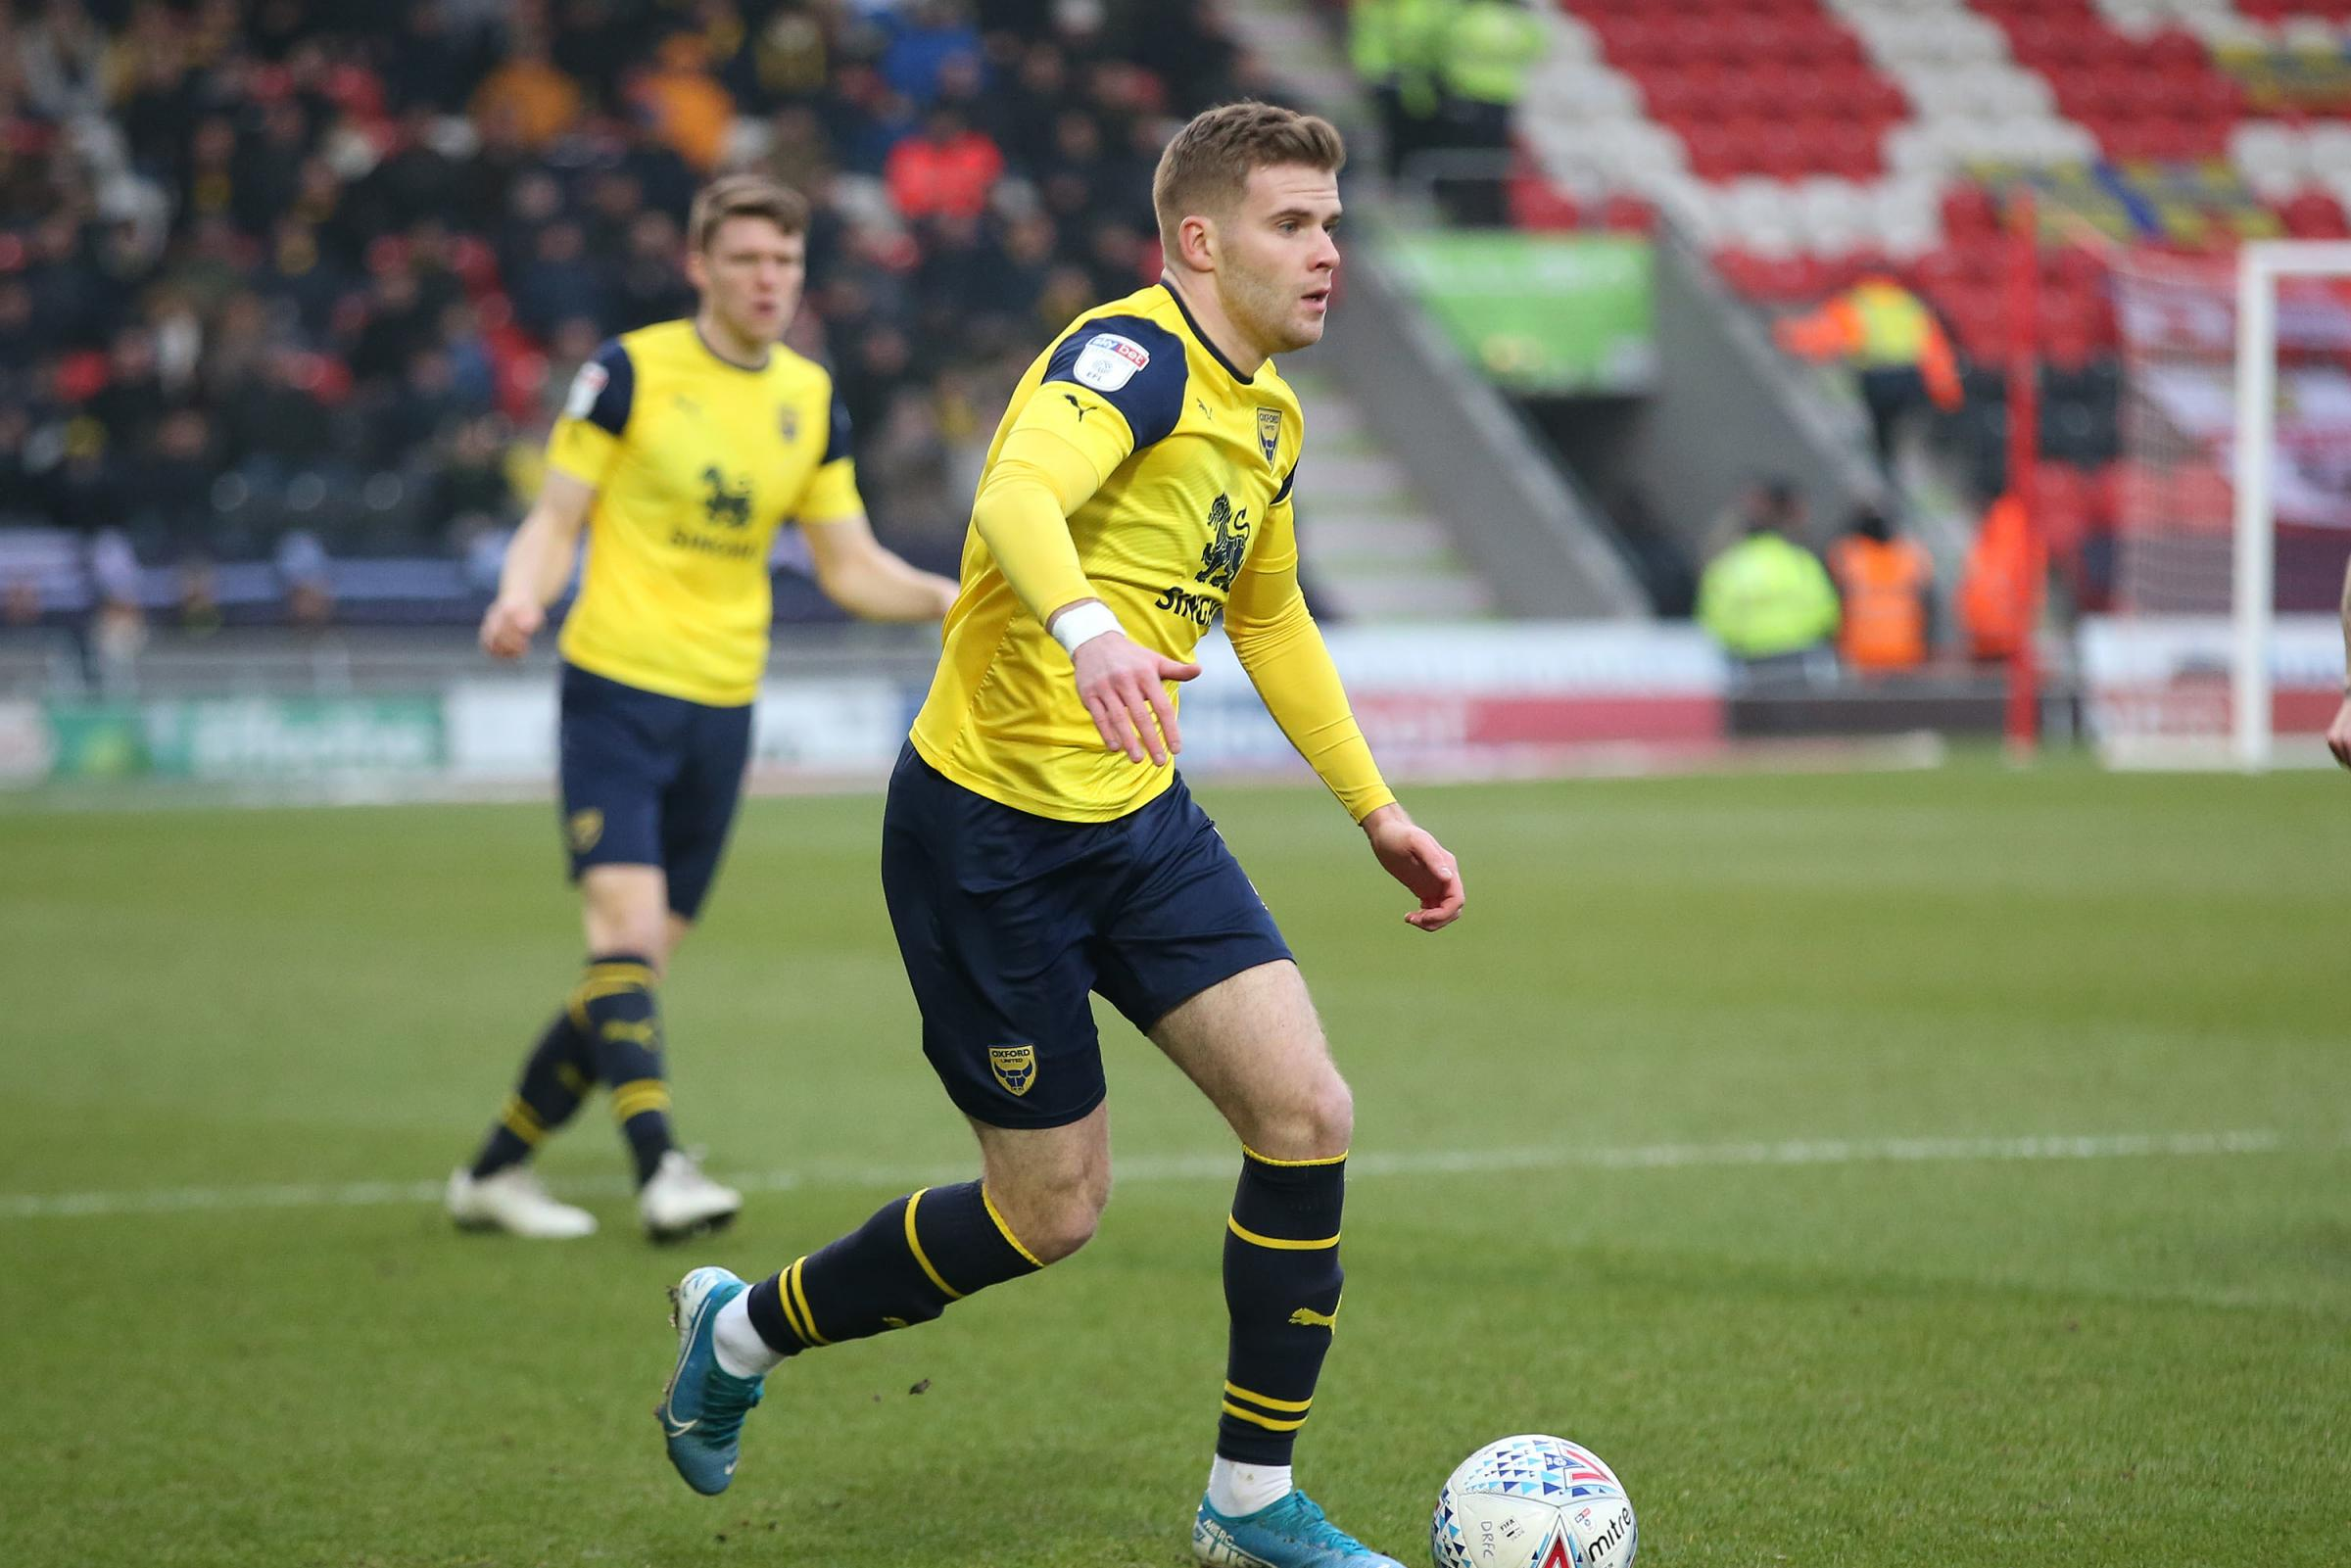 Transfer fee spat is not my fault, says Cadden